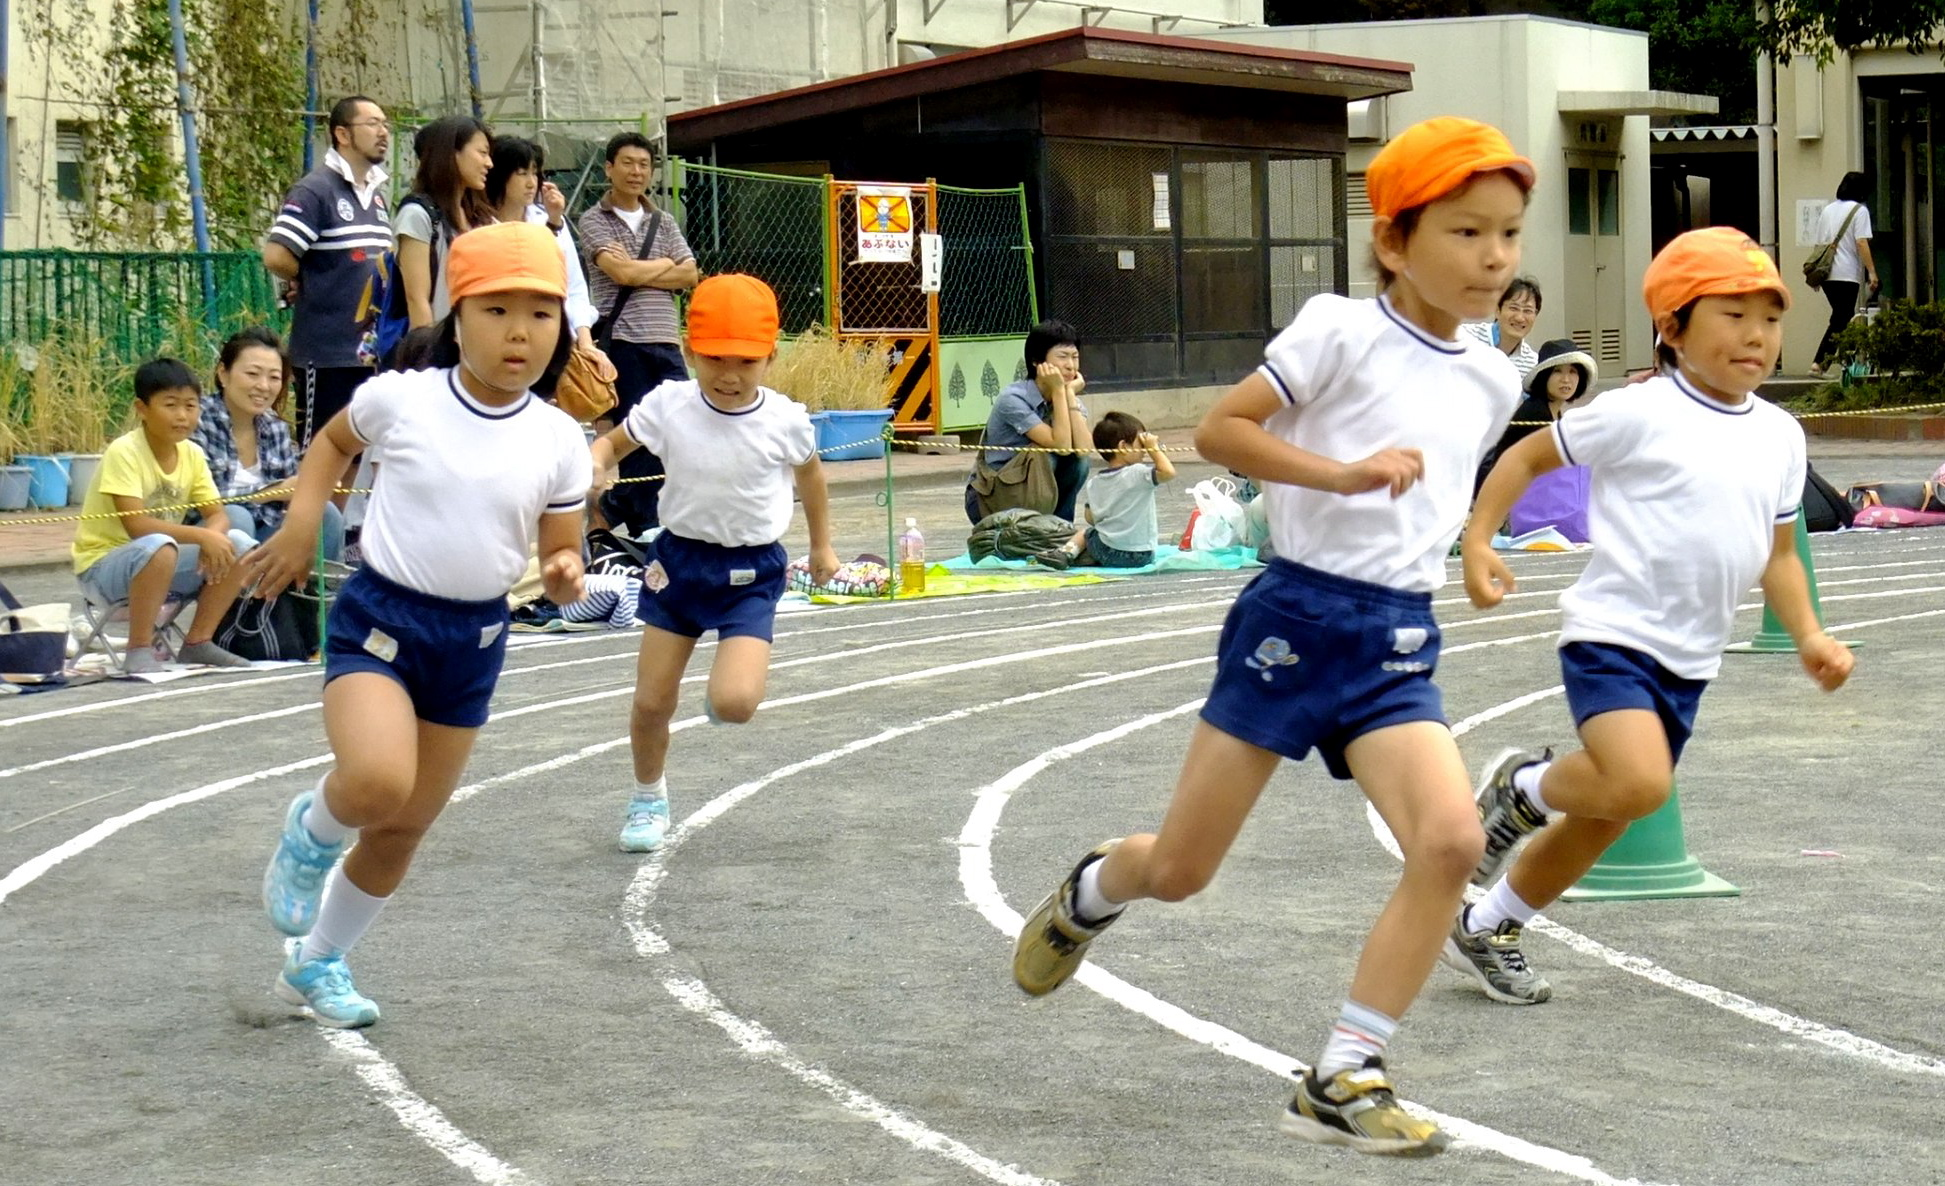 Fitness and health of children through sport: the context